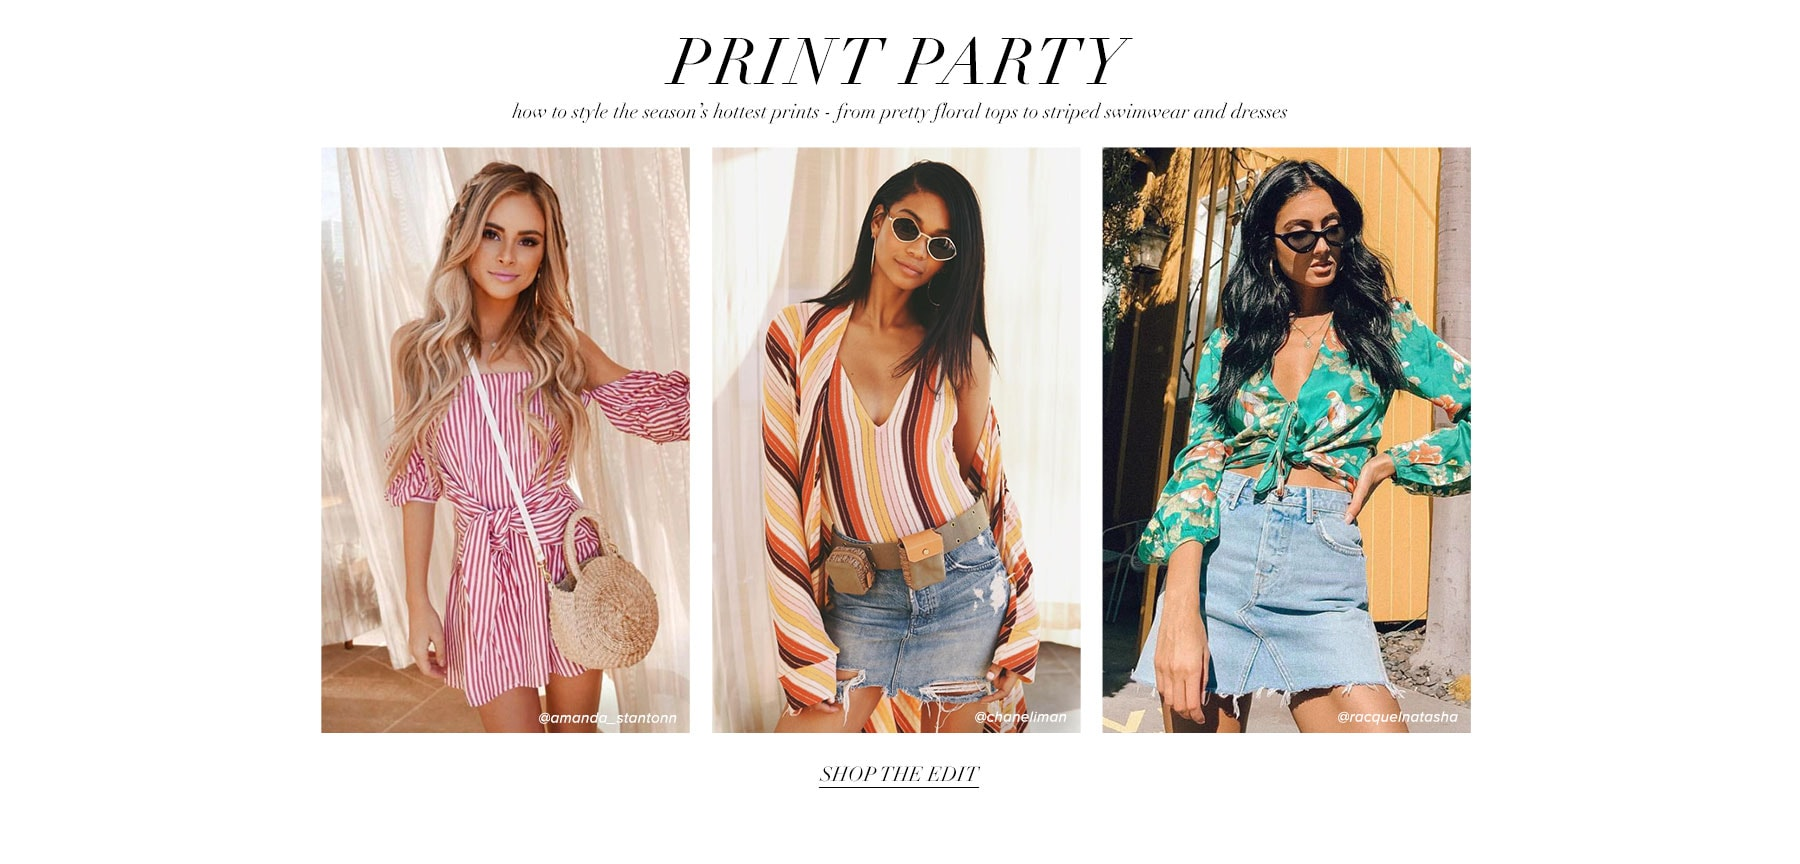 Print party. How to style the season's hottest prints - from polka dotted dresses to striped bikinis and blouses. Shop the edit.